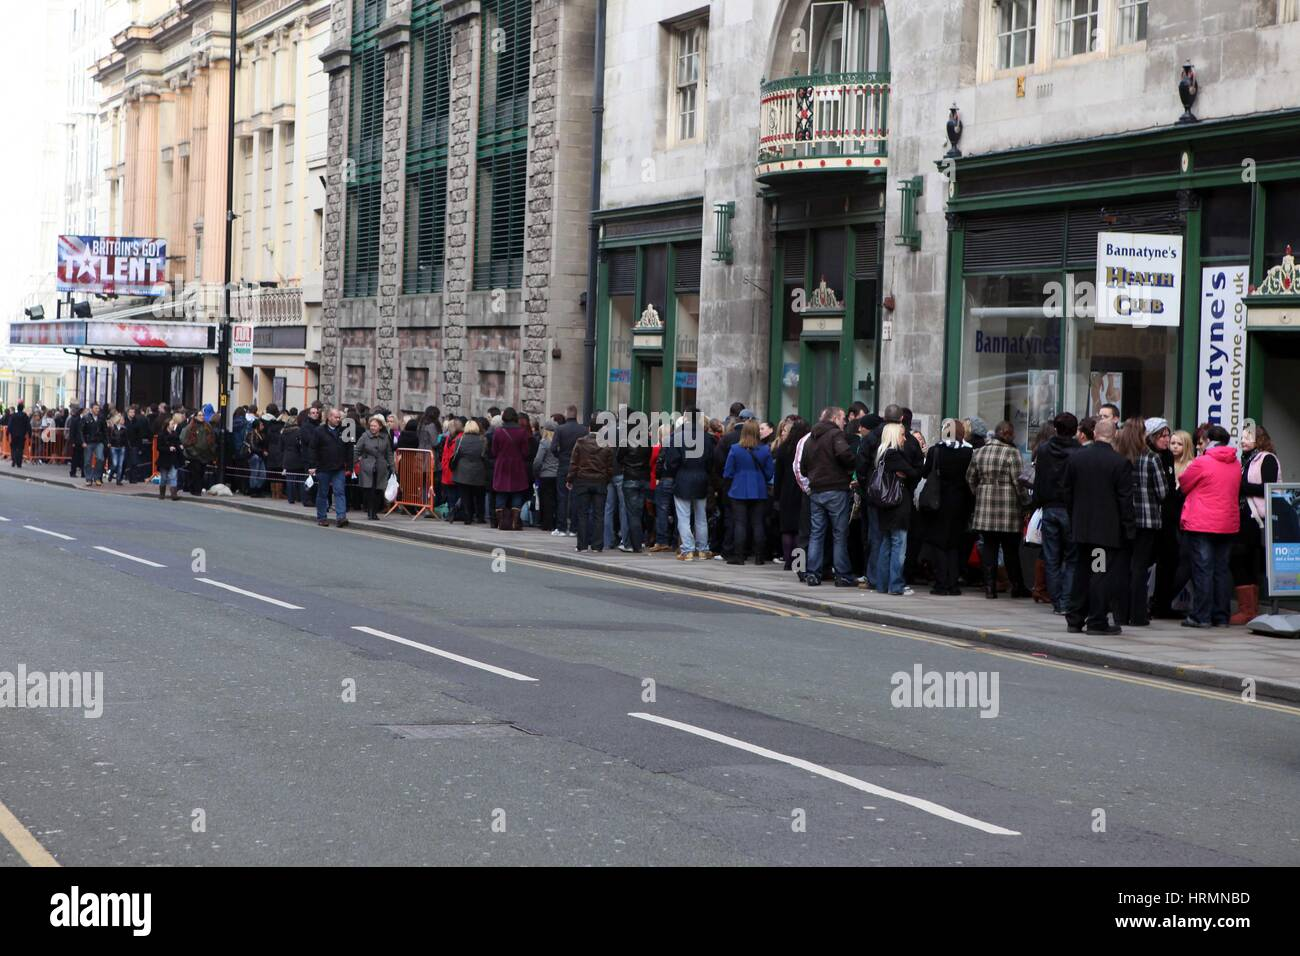 Britain Got Talent Castings an der Manchester Opera House. Januar 2010 Stockbild